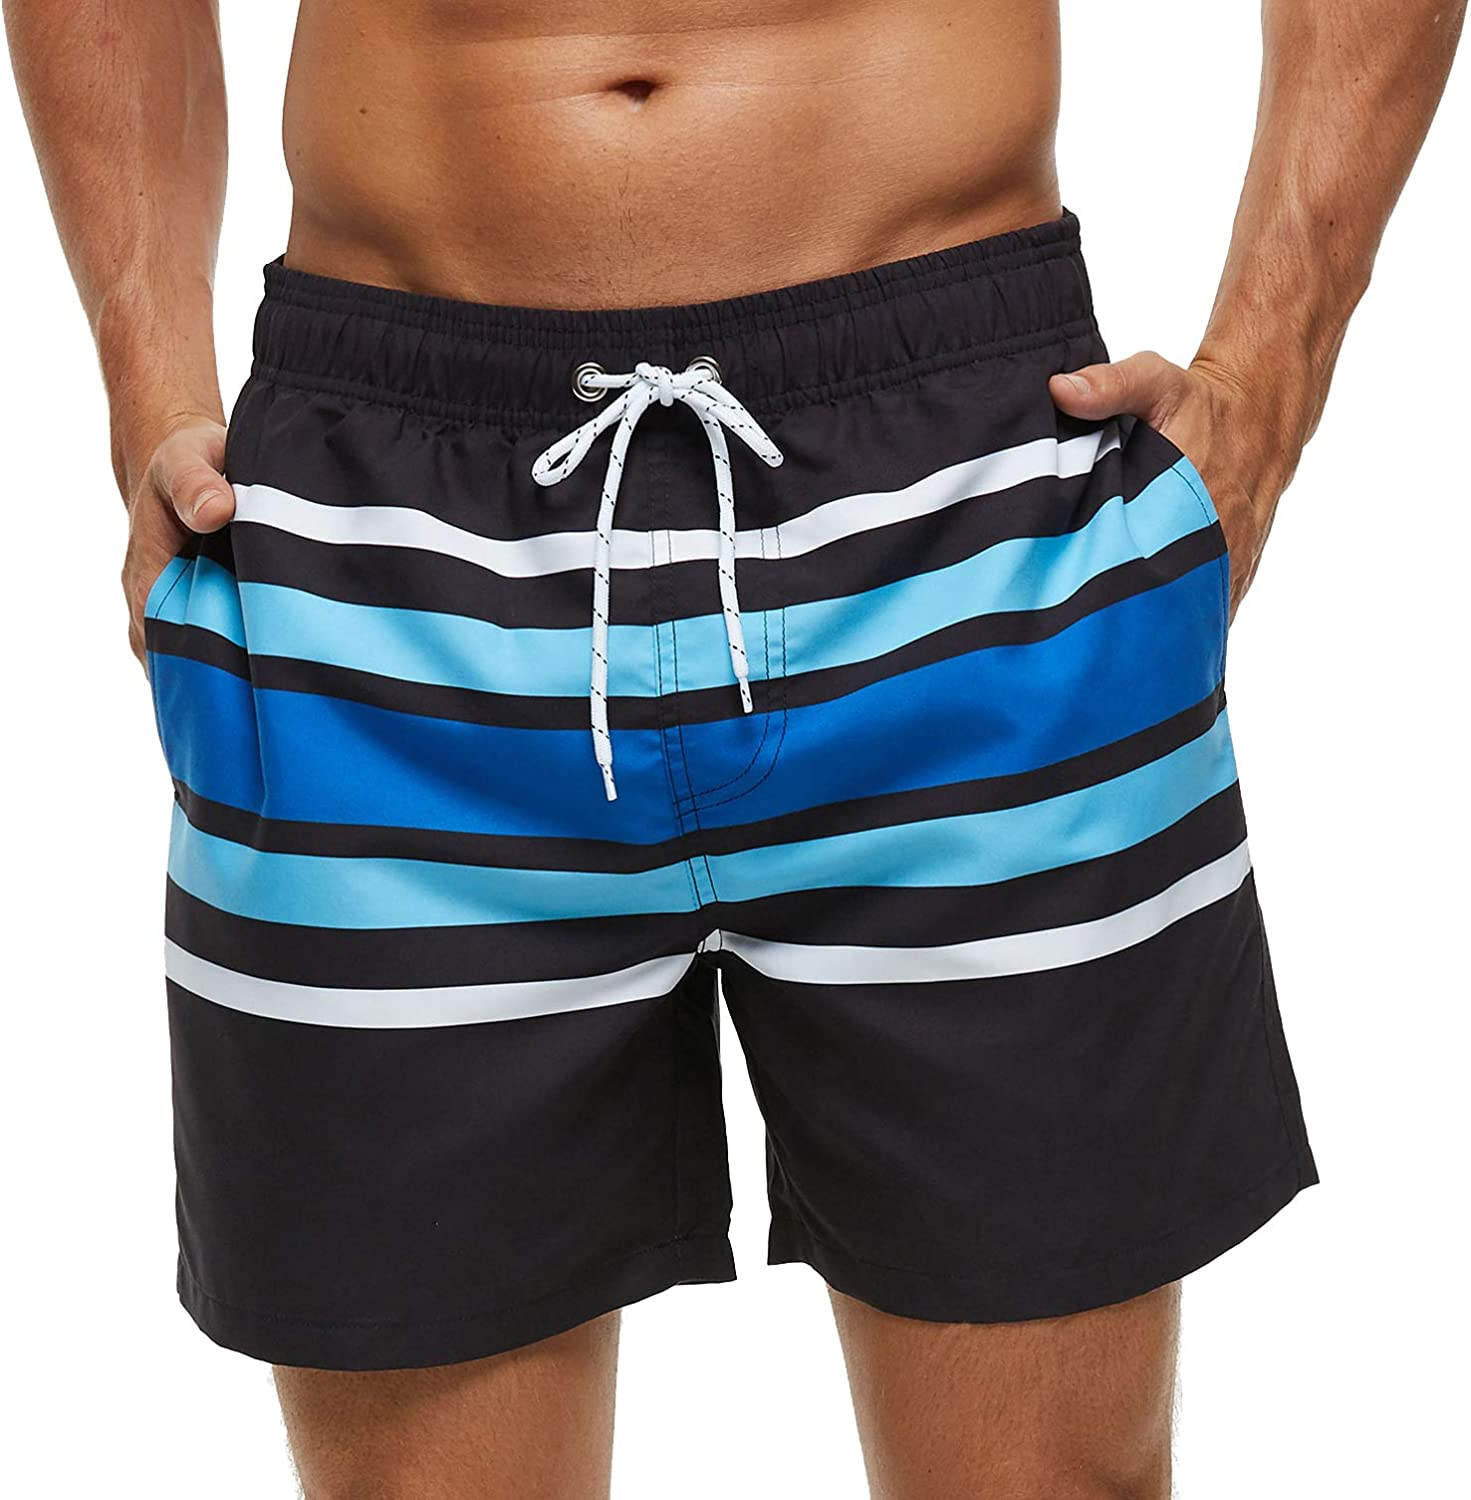 pjsonesie Mens Swim Trunks